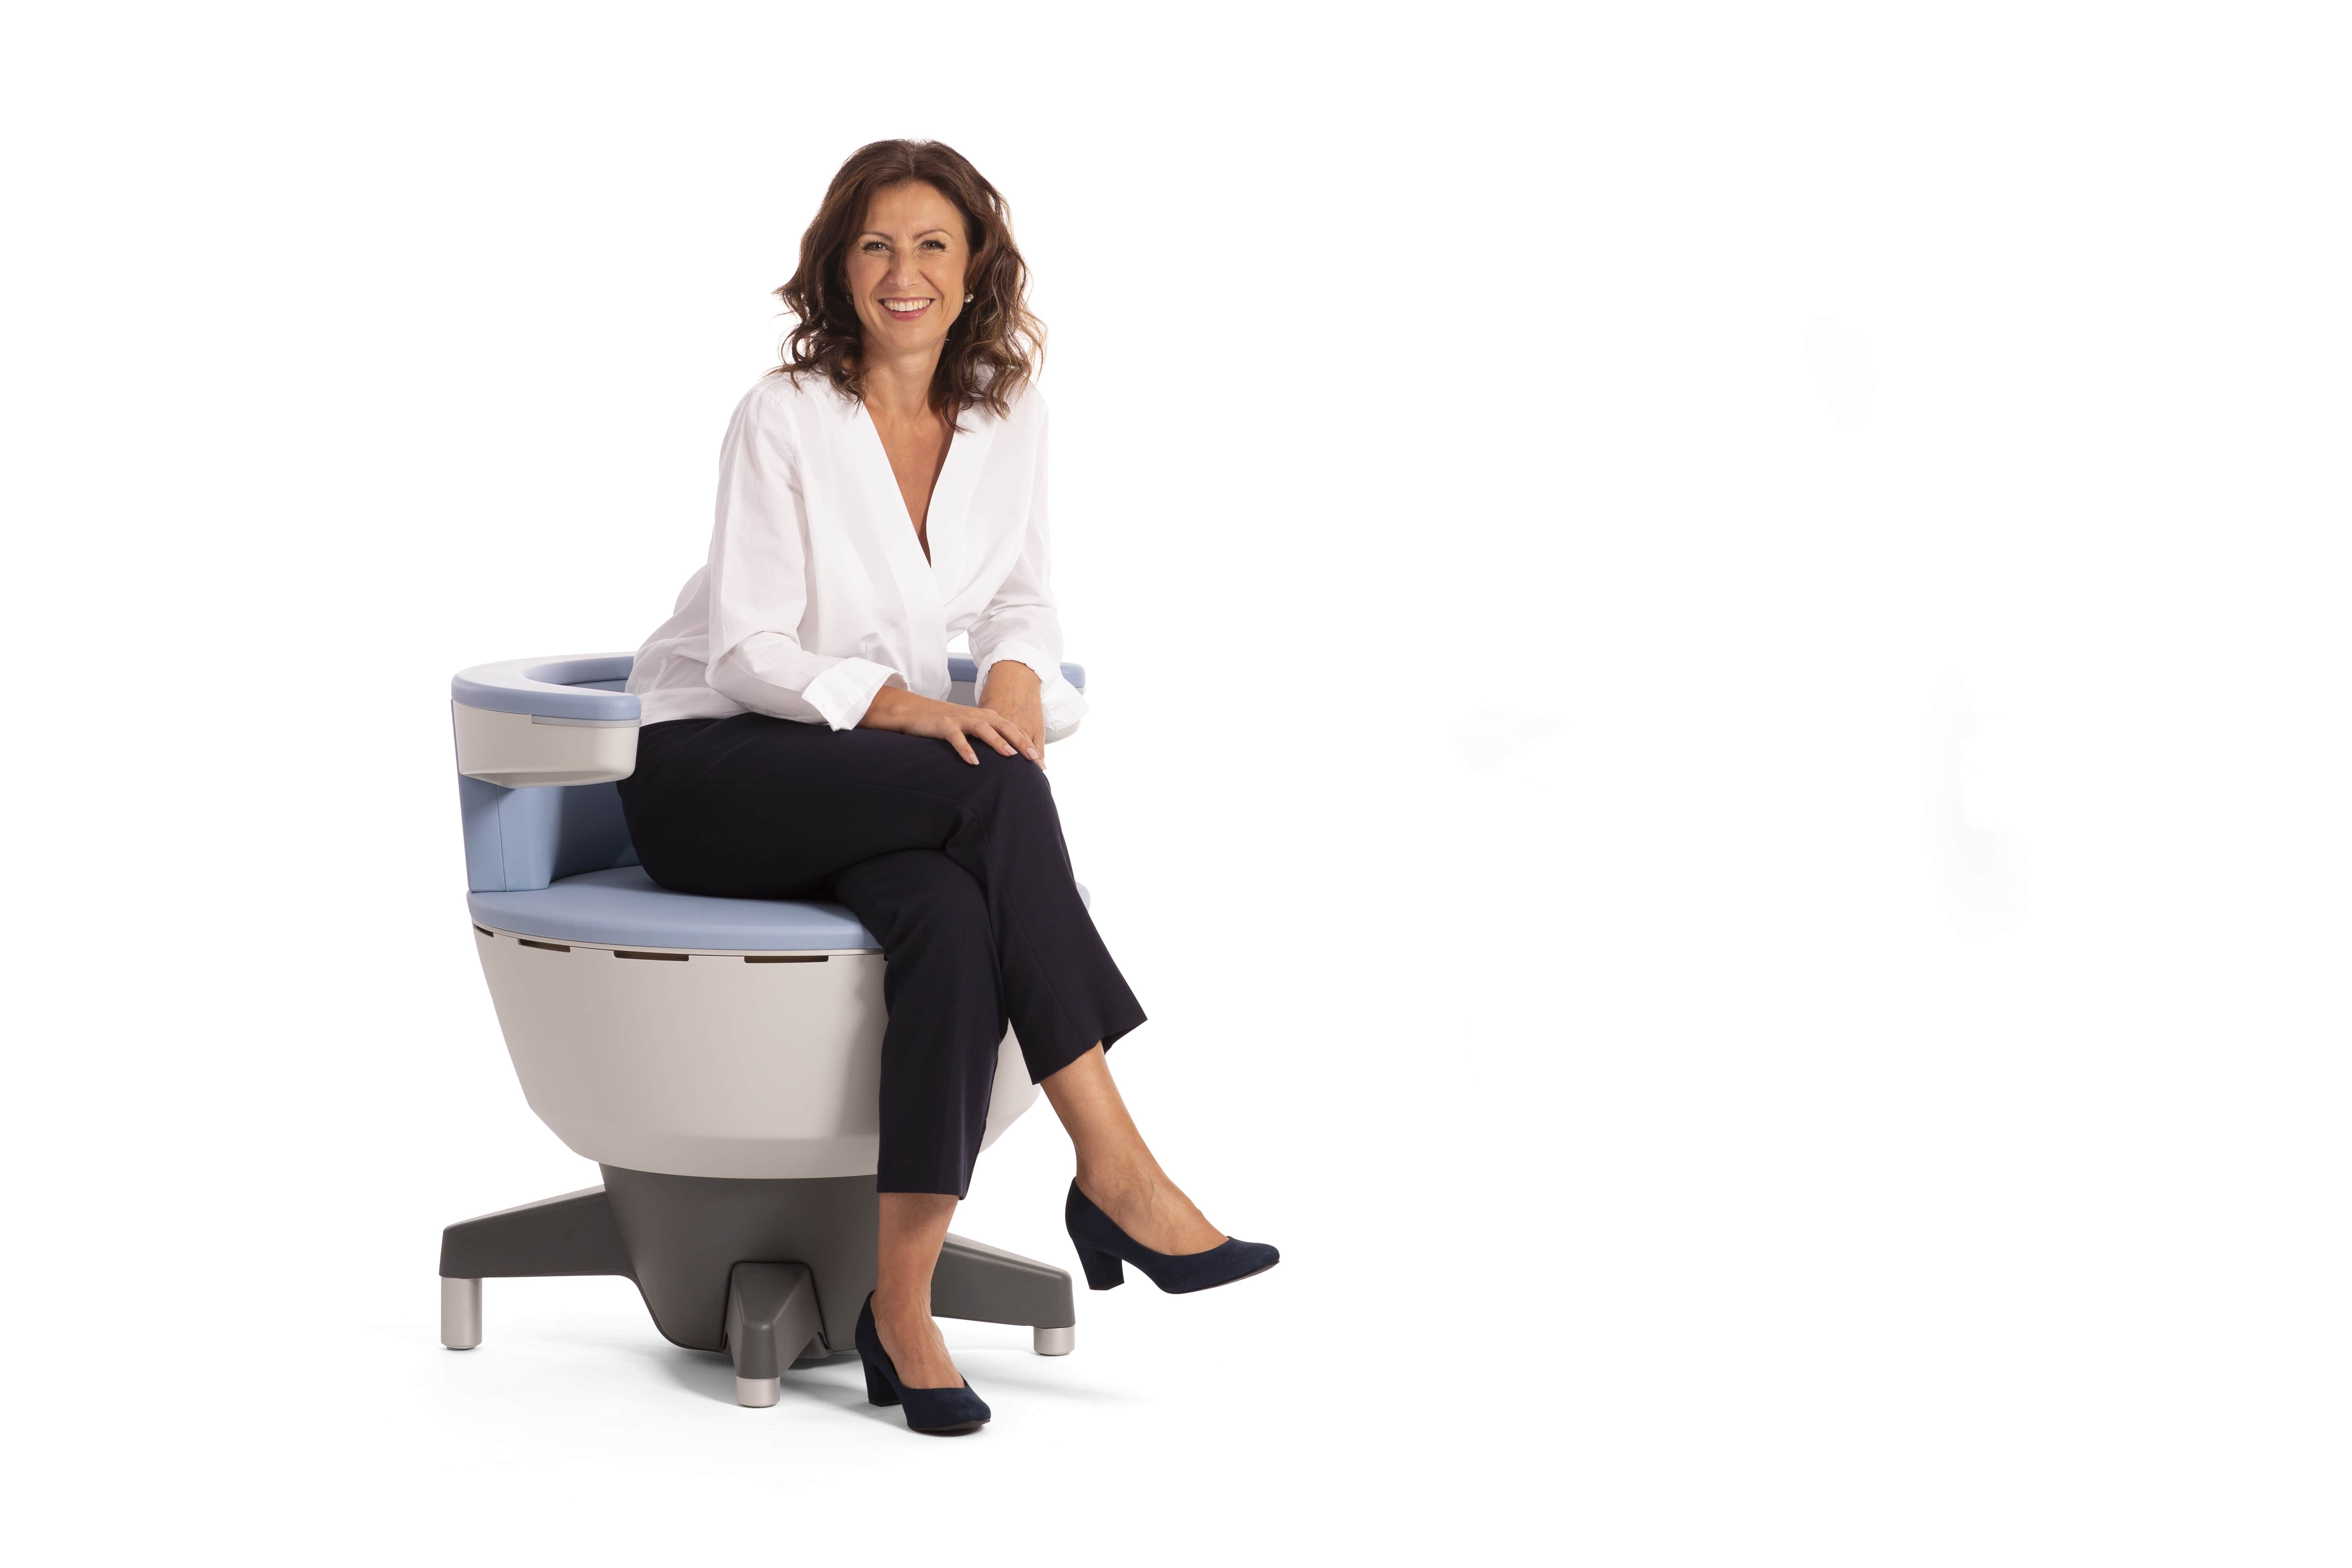 The Emsella Chair for Pelvic Floor